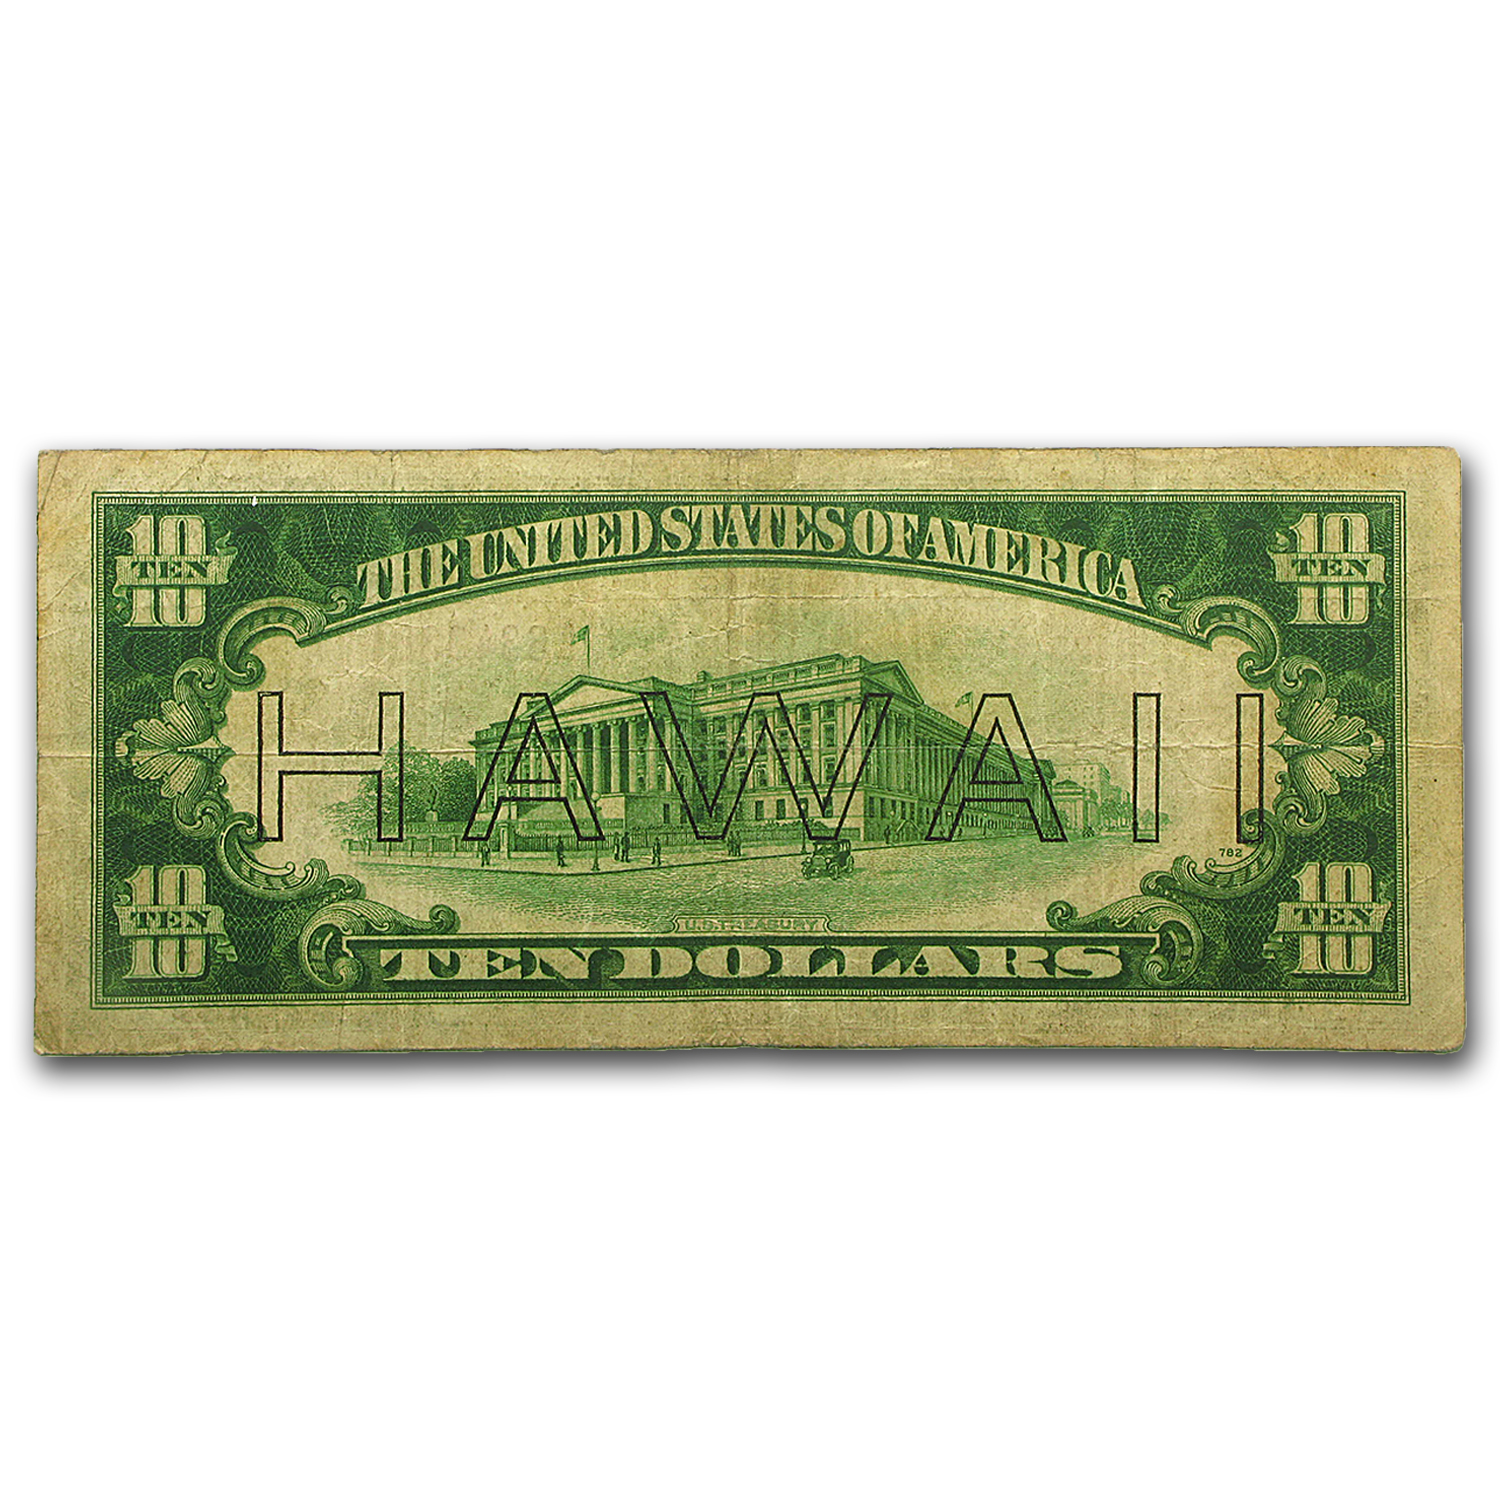 1934-A $10 FRN - Brown Seal (HAWAII) - Very Good